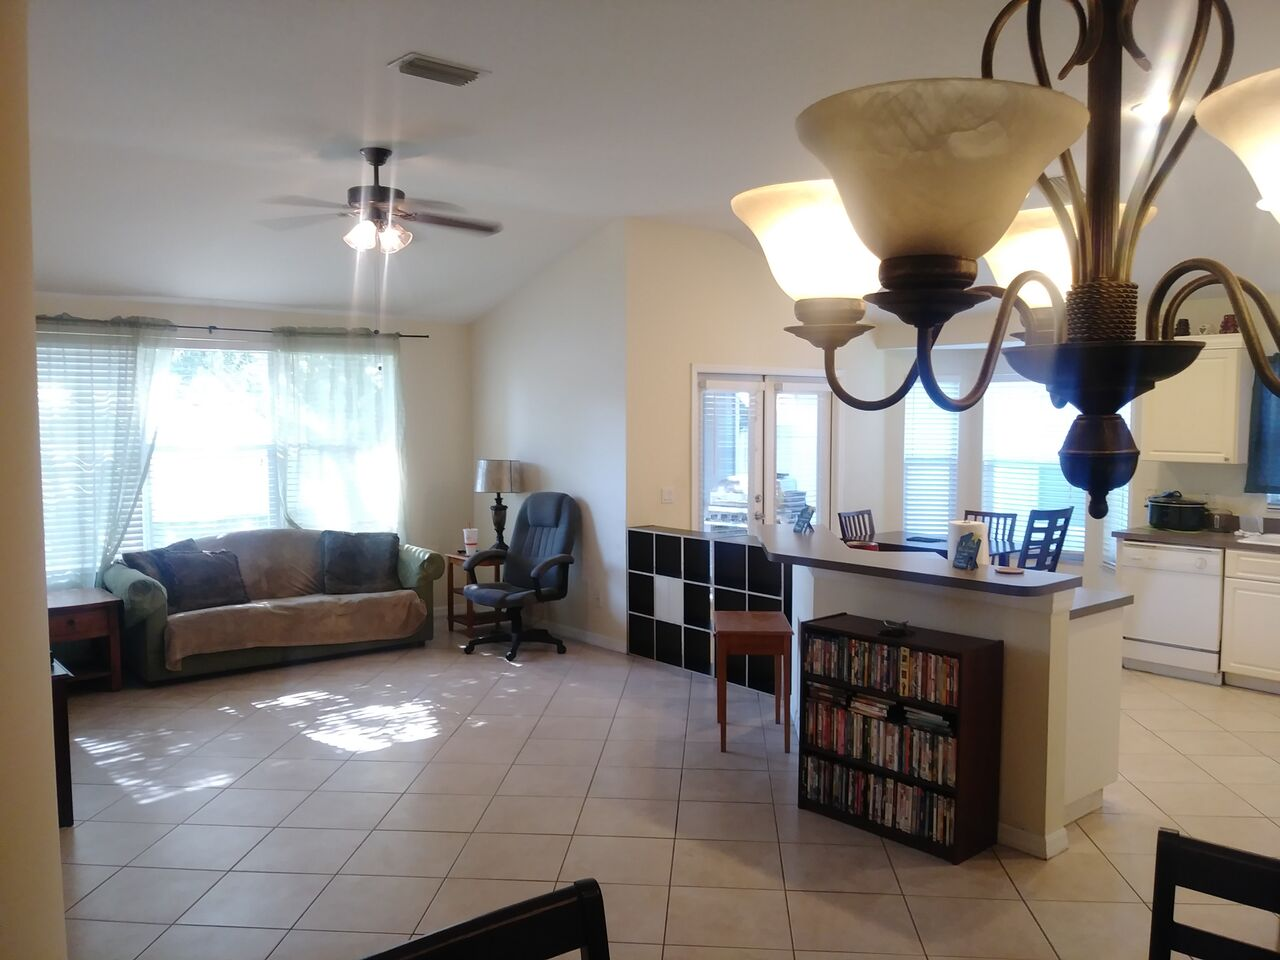 Photo of 9828 White Barn Way, Riverview, FL, 33569